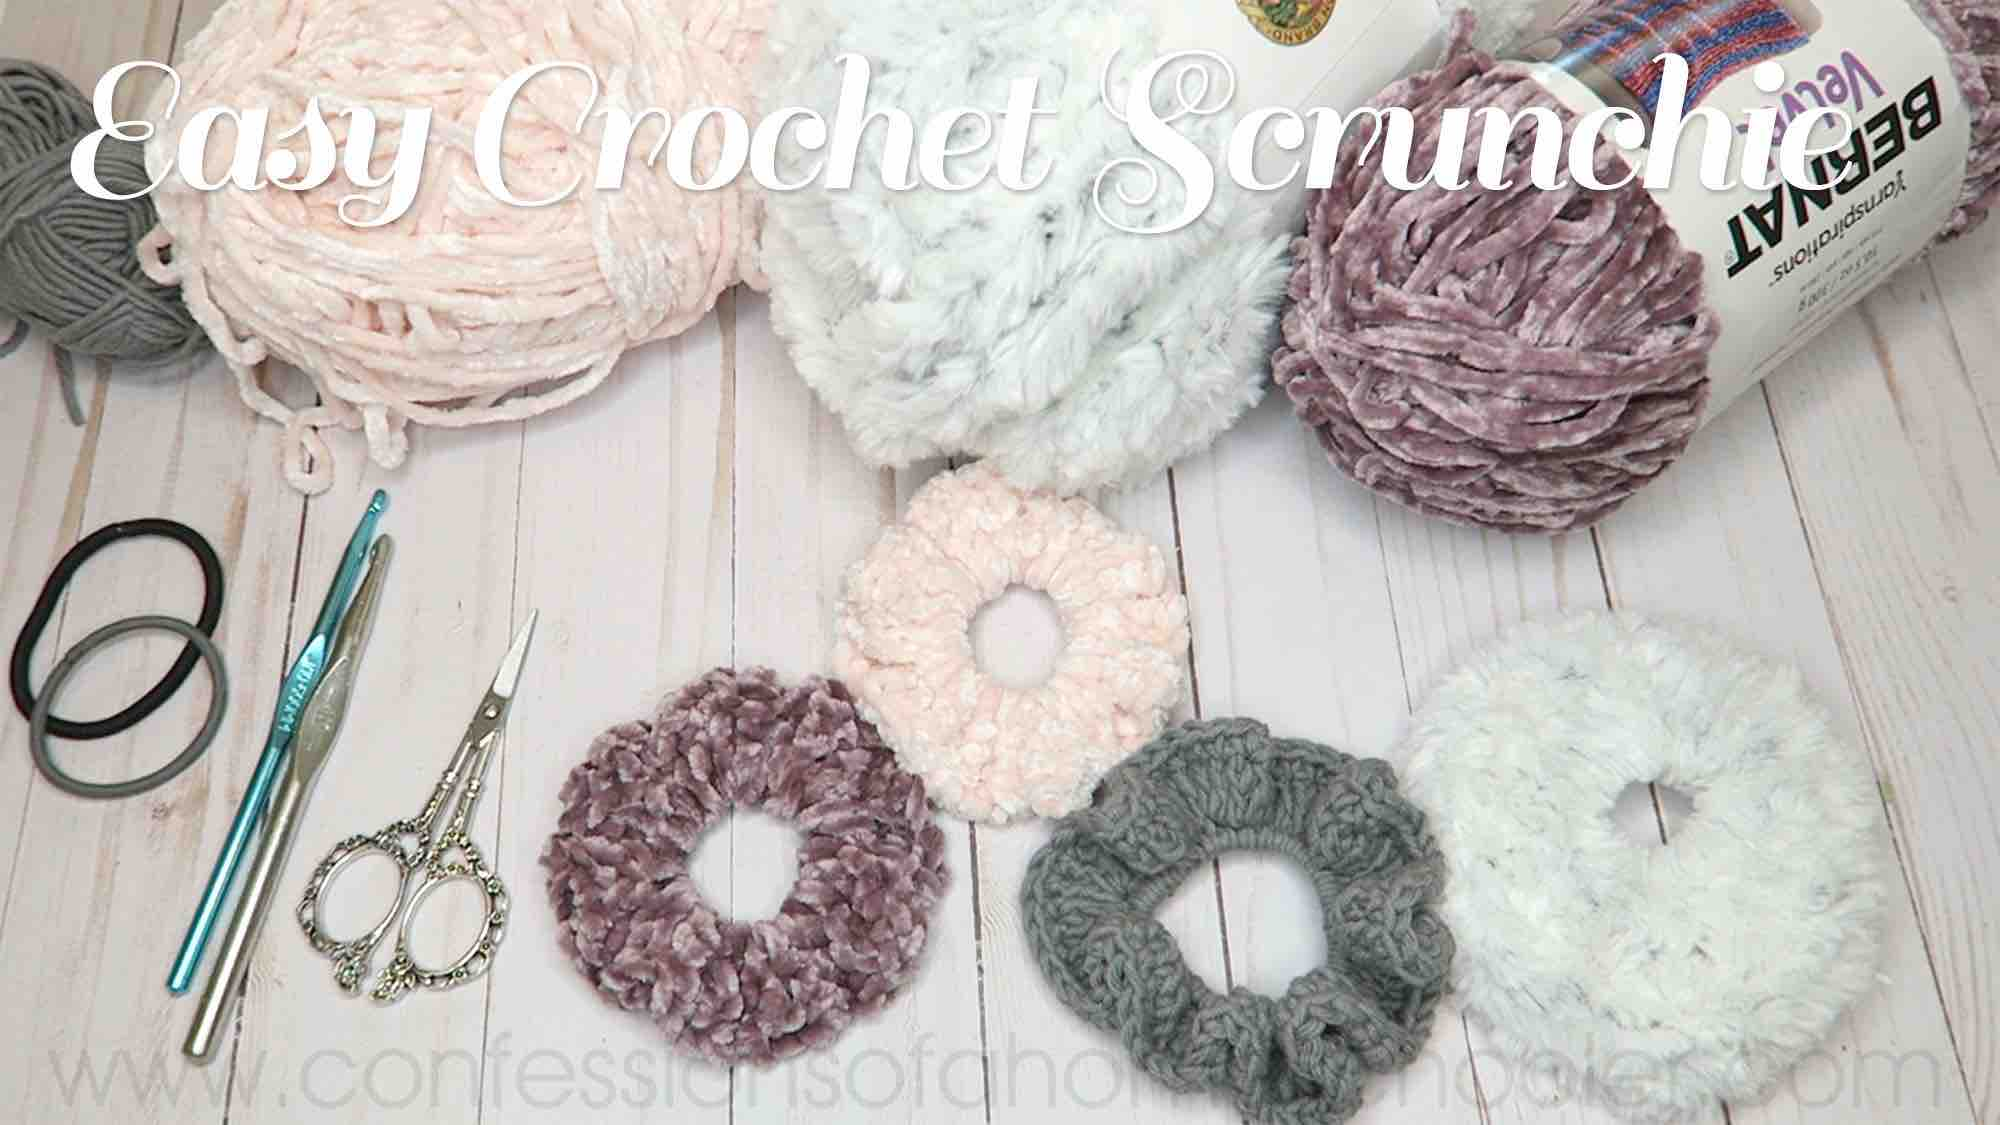 Easy Crochet Scrunchie Tutorial